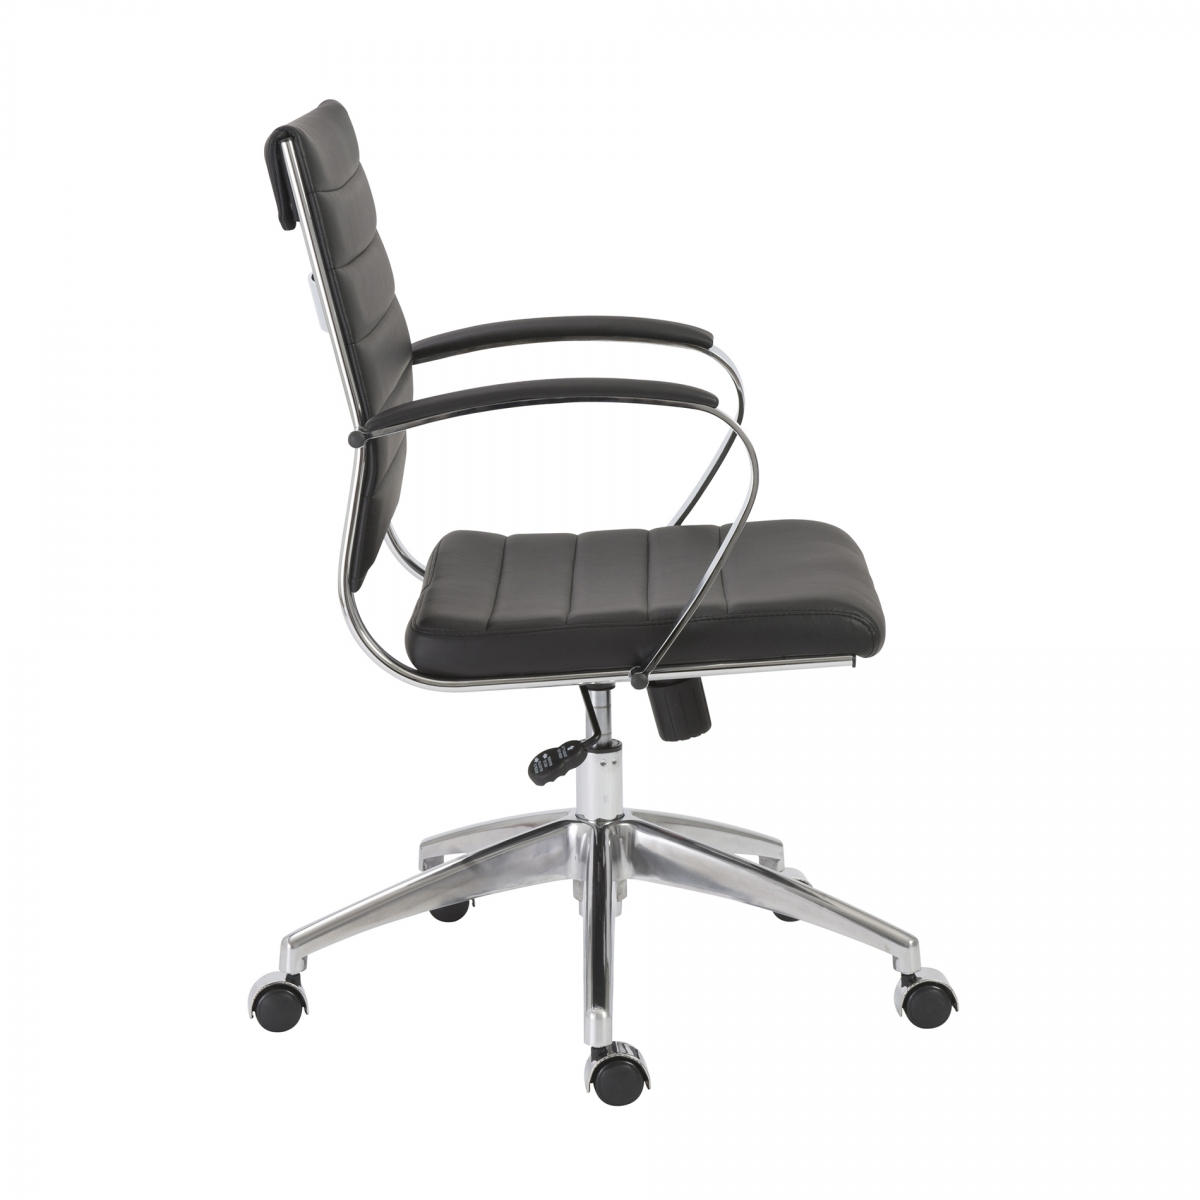 Axel Low-Back Chair